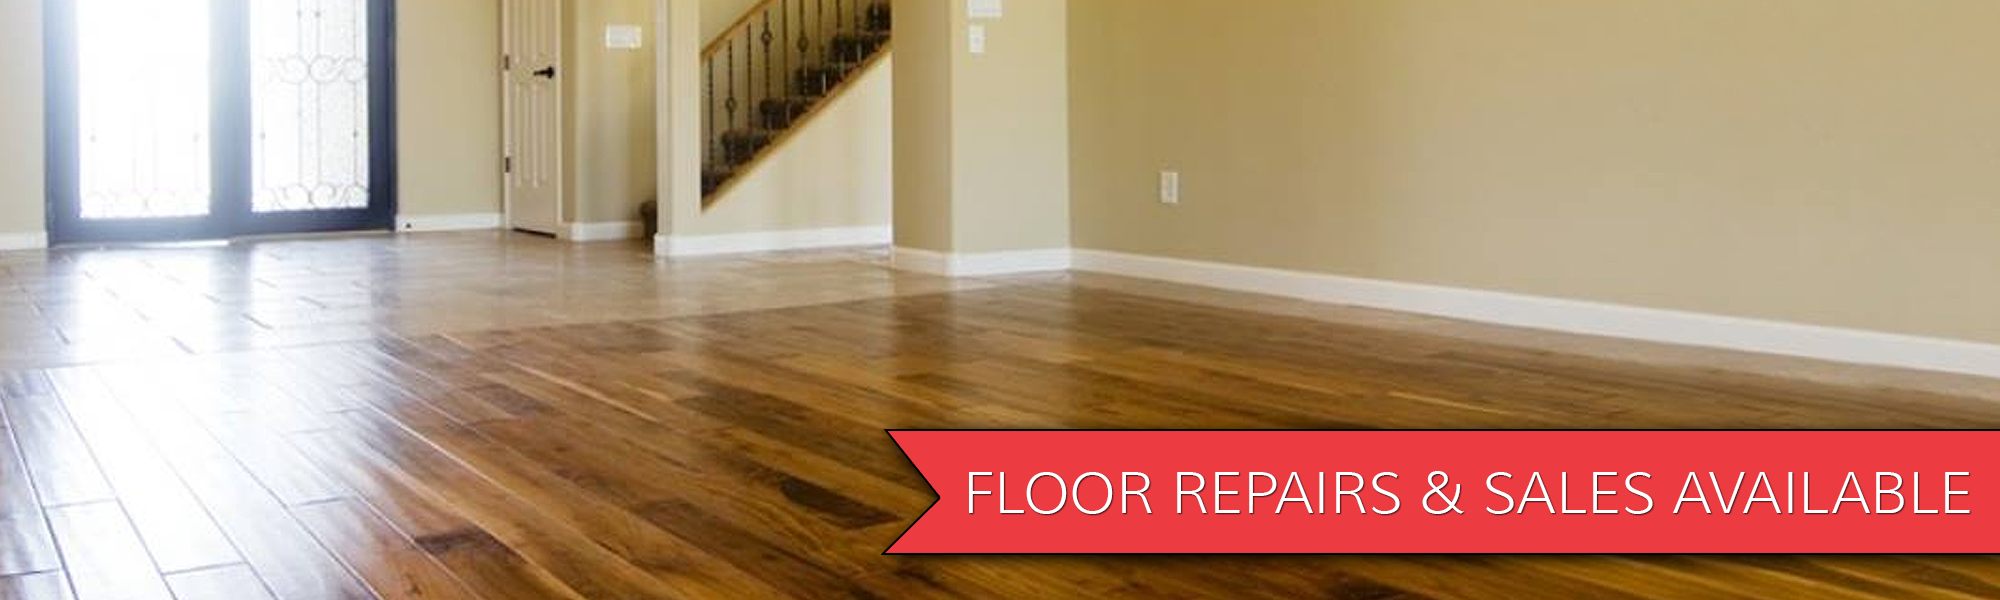 Flooring Contractor Dustless Tile Removal Fort Worth Tx